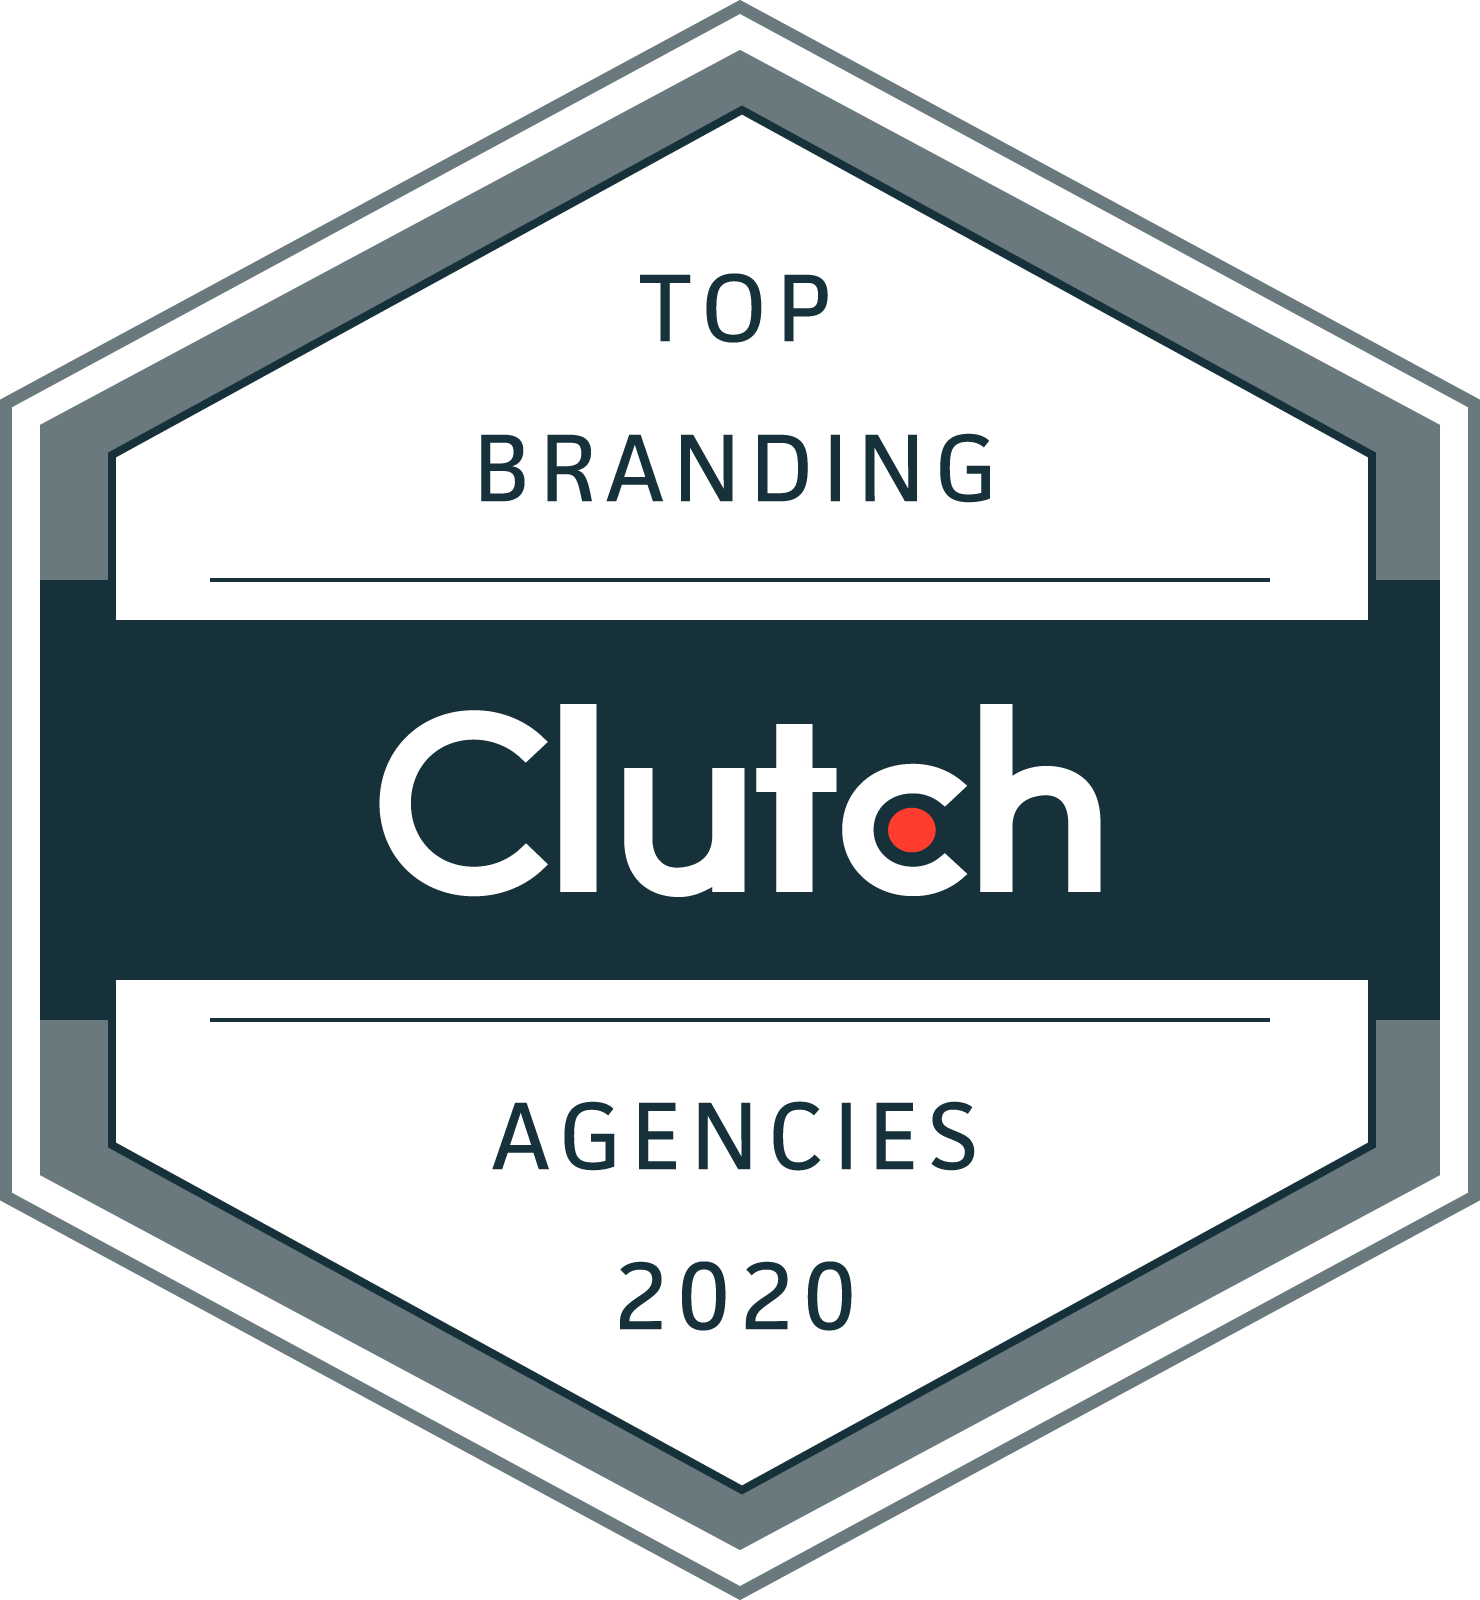 Clutch Top Branding Award Agencies 2020